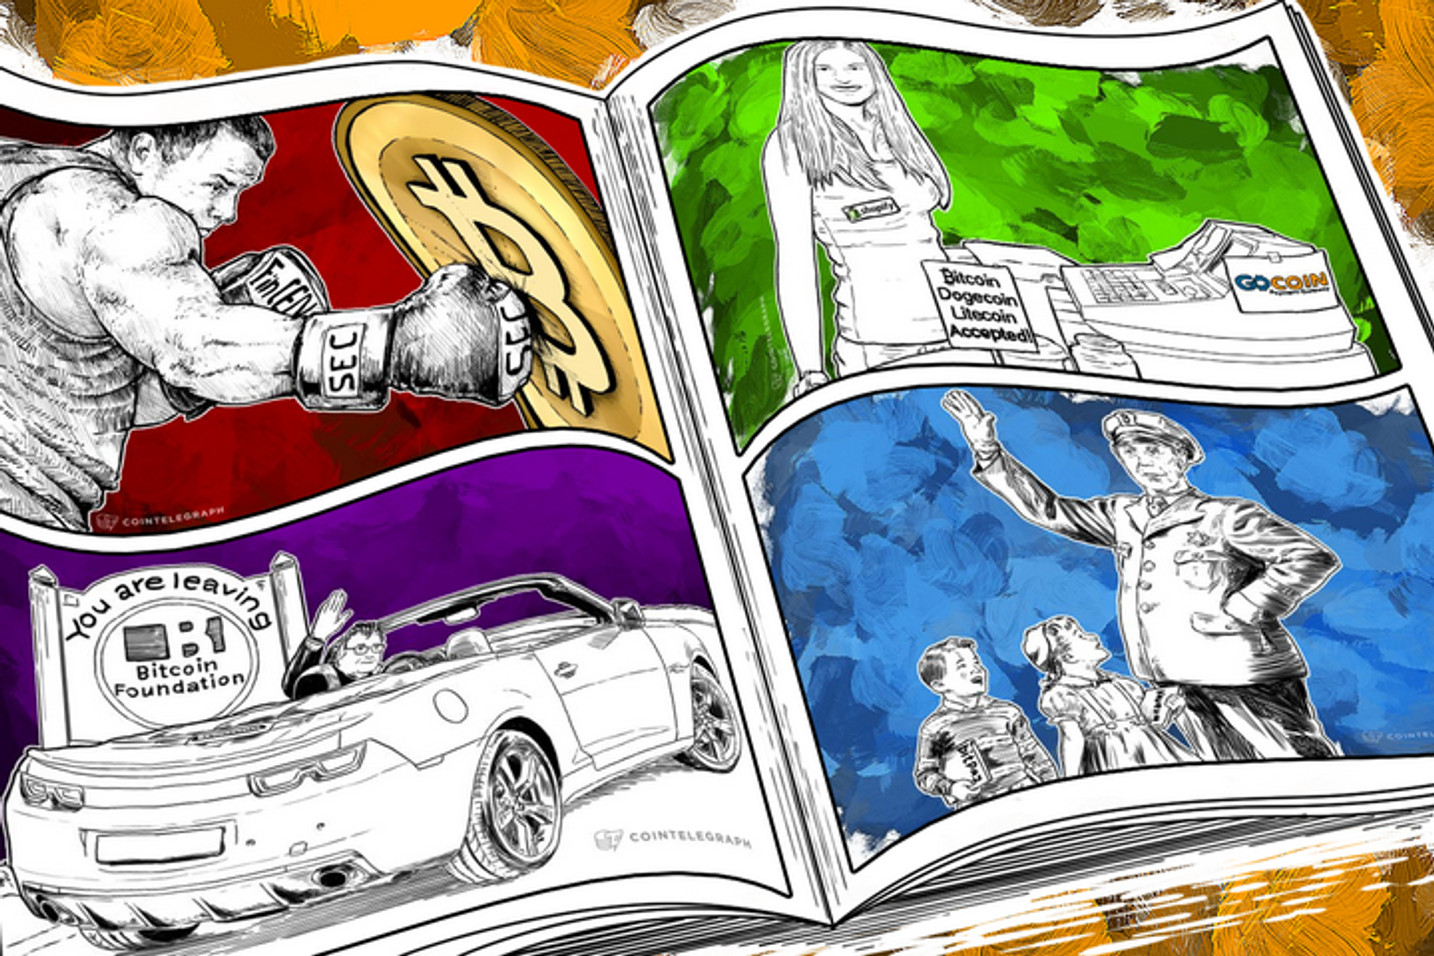 Weekend Roundup: Reports, Rumors Surround a Possible SEC Crackdown; Jon Matonis Leaves Bitcoin Foundation